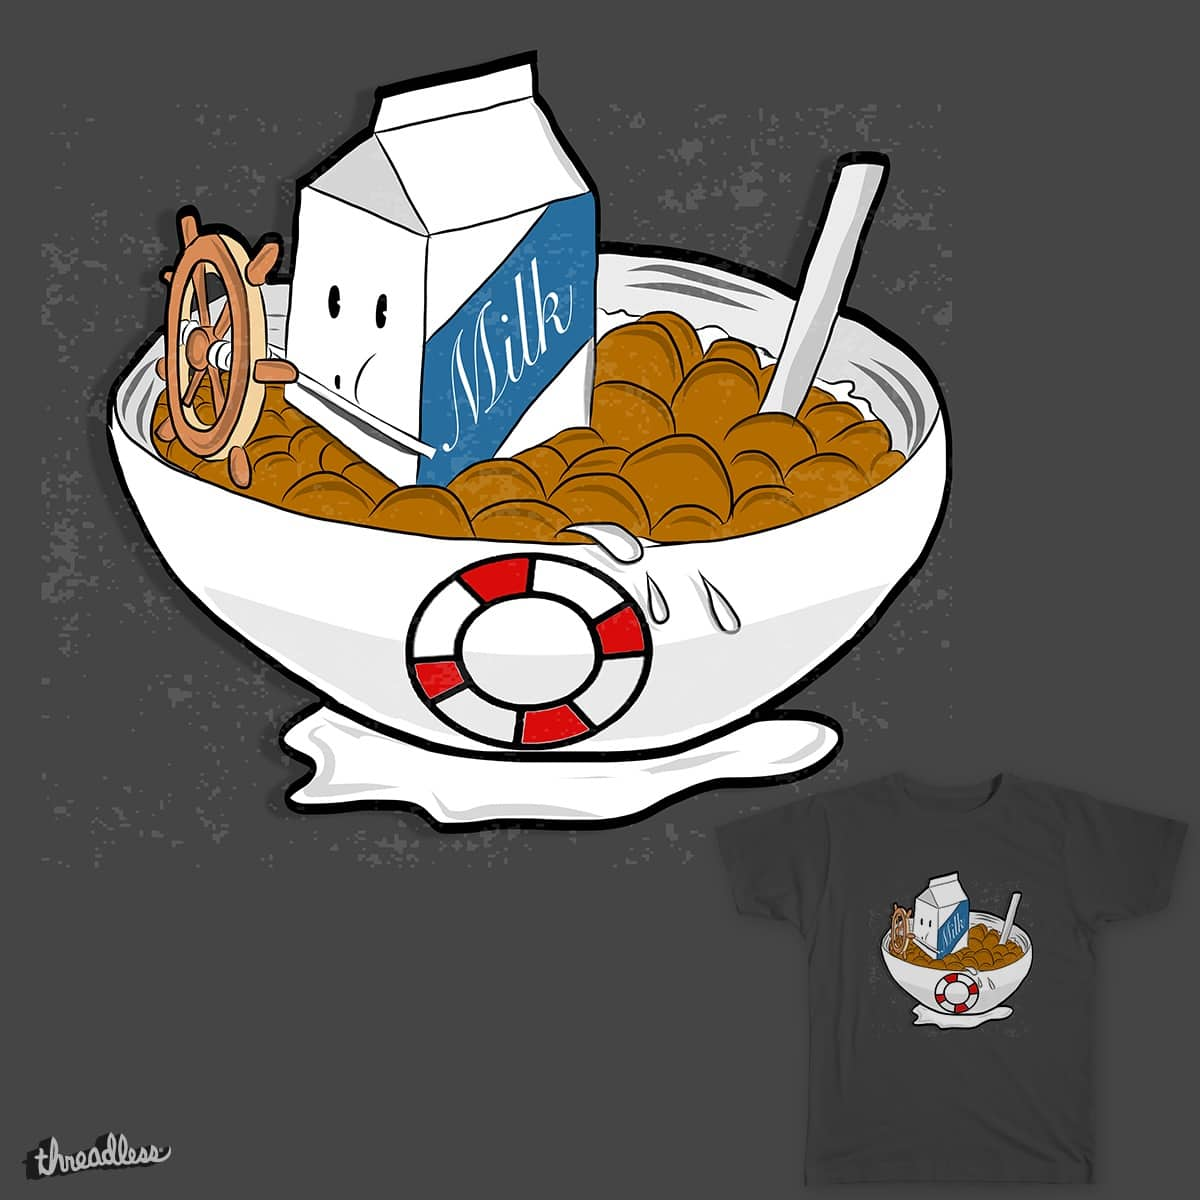 Cereal Bowl Willie by sleftwich1 on Threadless